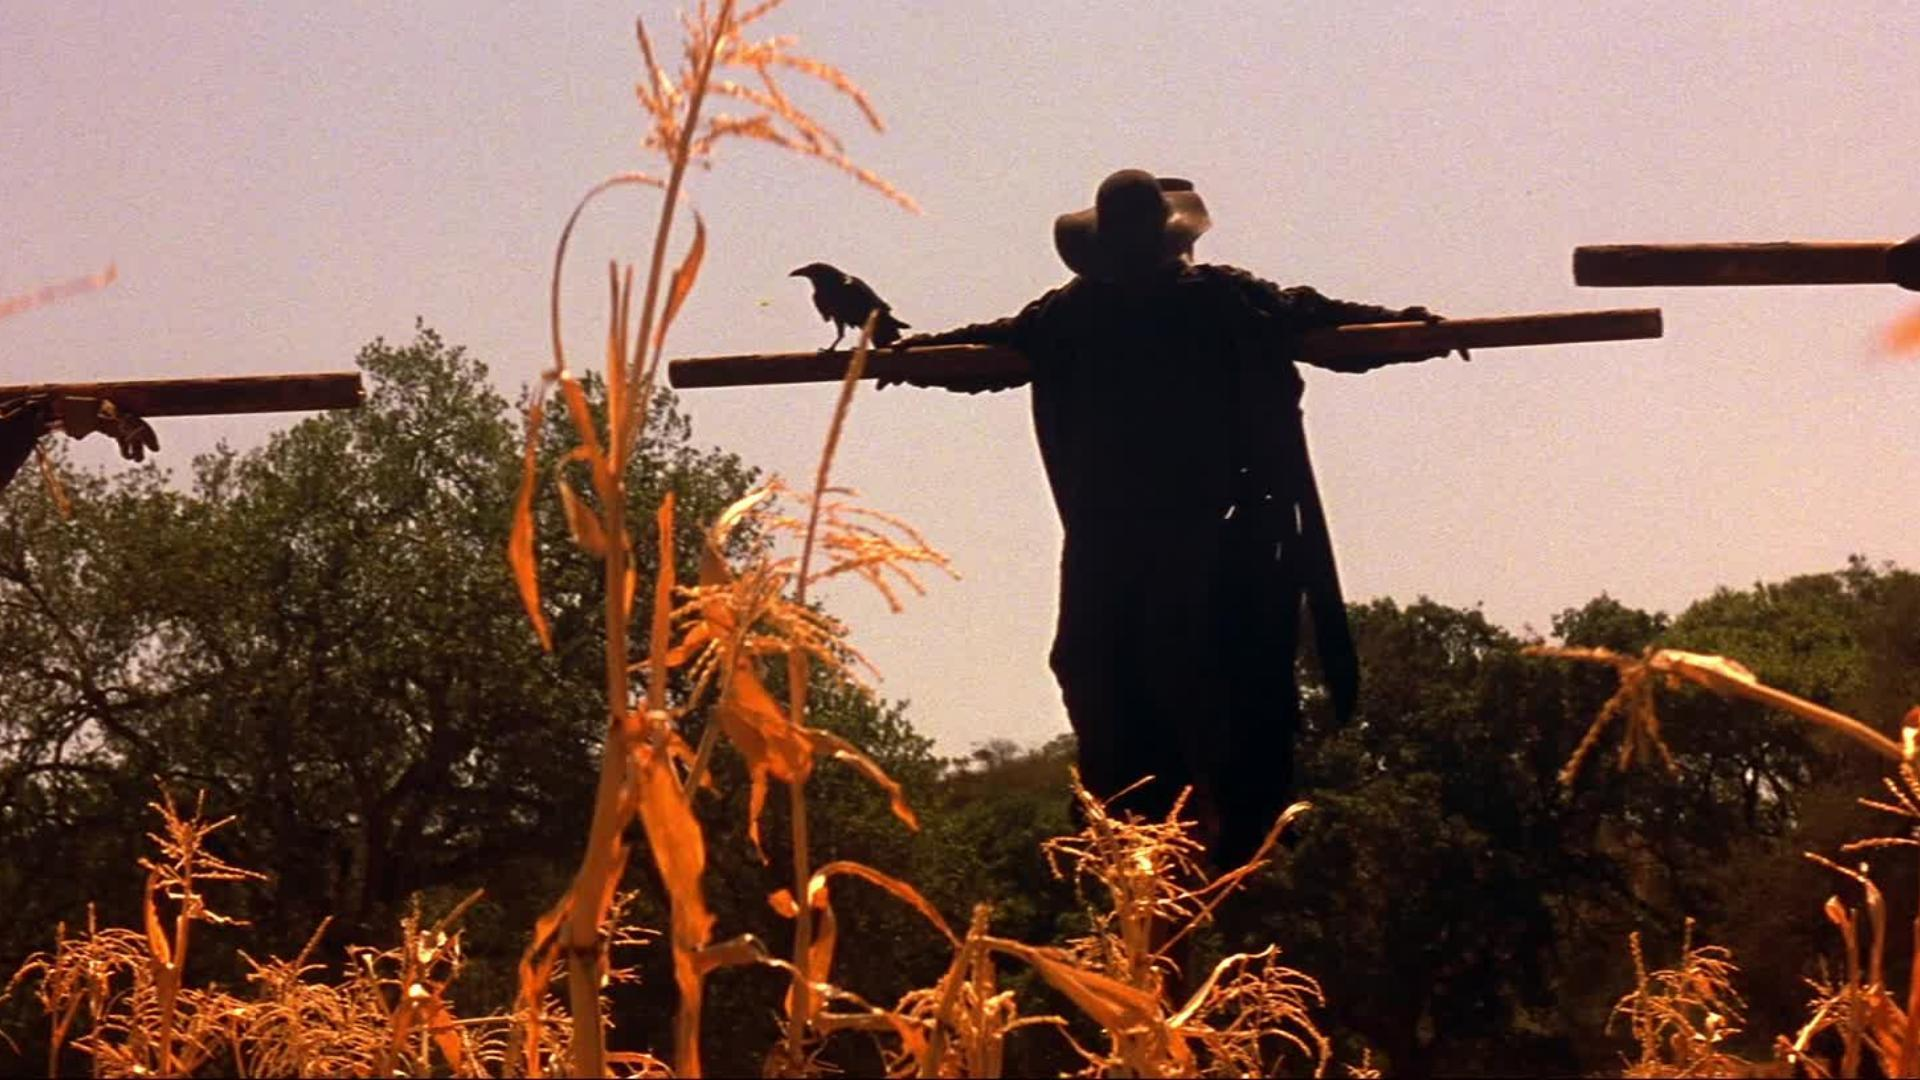 jeepers creepers 1 trailer youtube